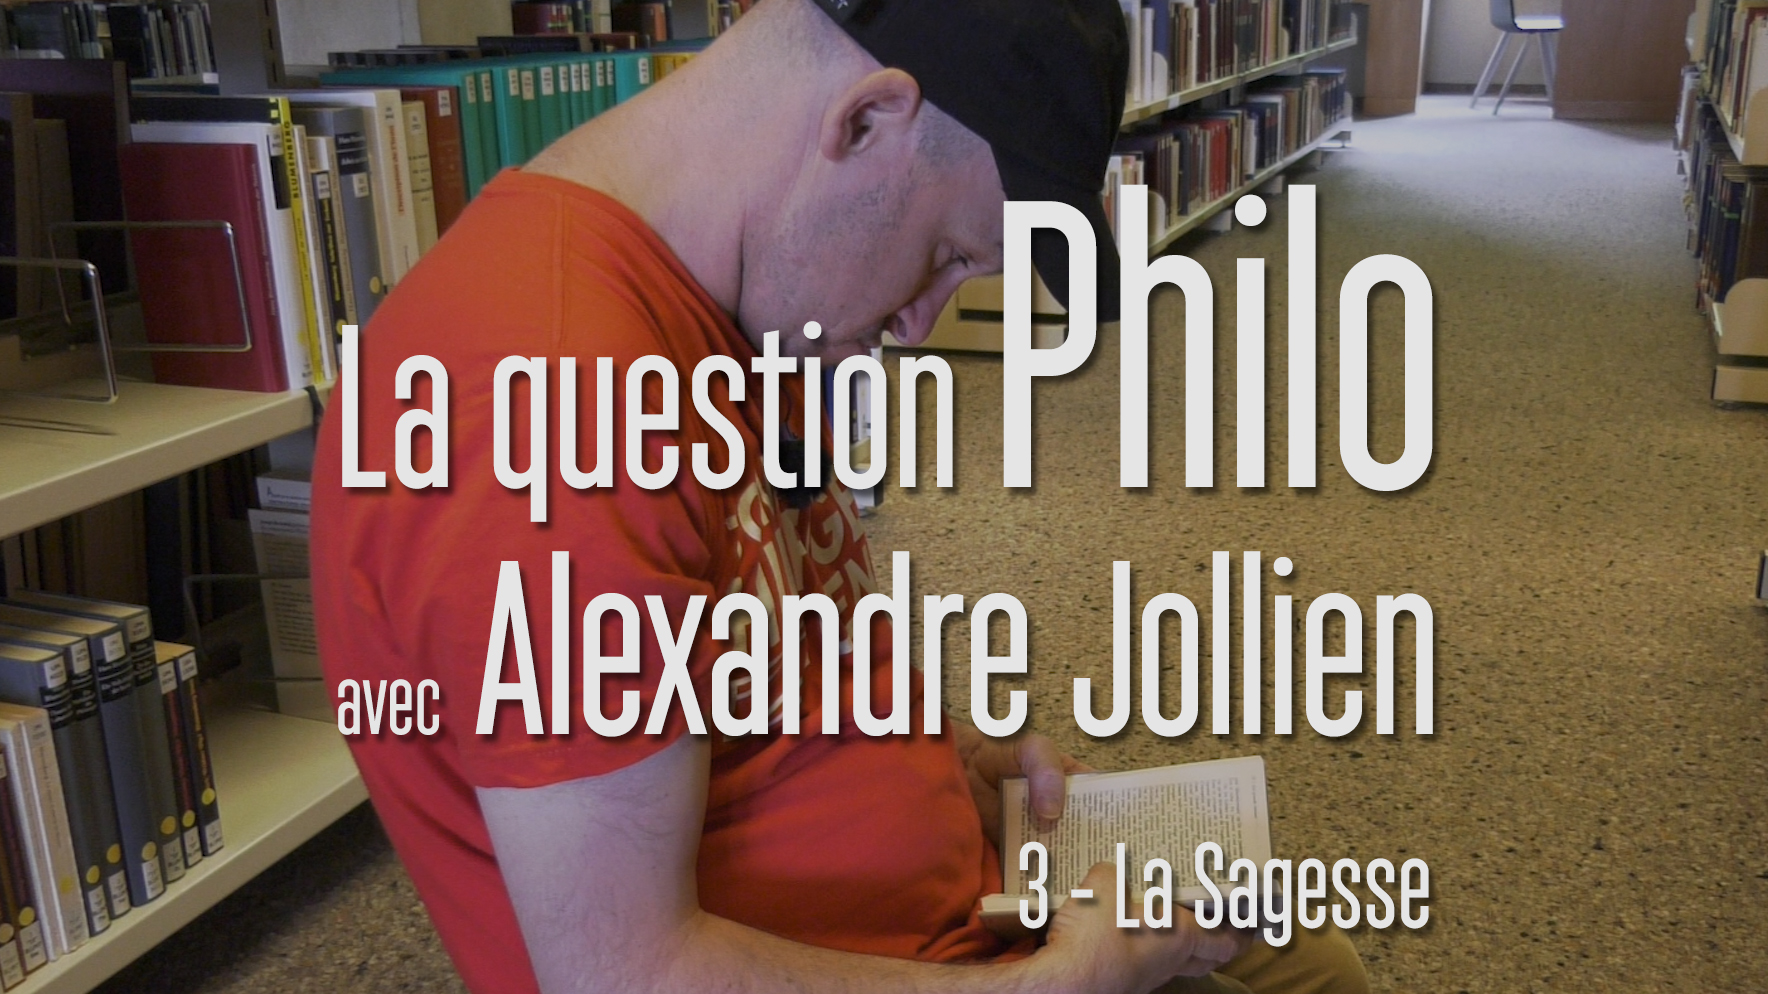 La question philo avec Alexandre Jollien - La sagesse.